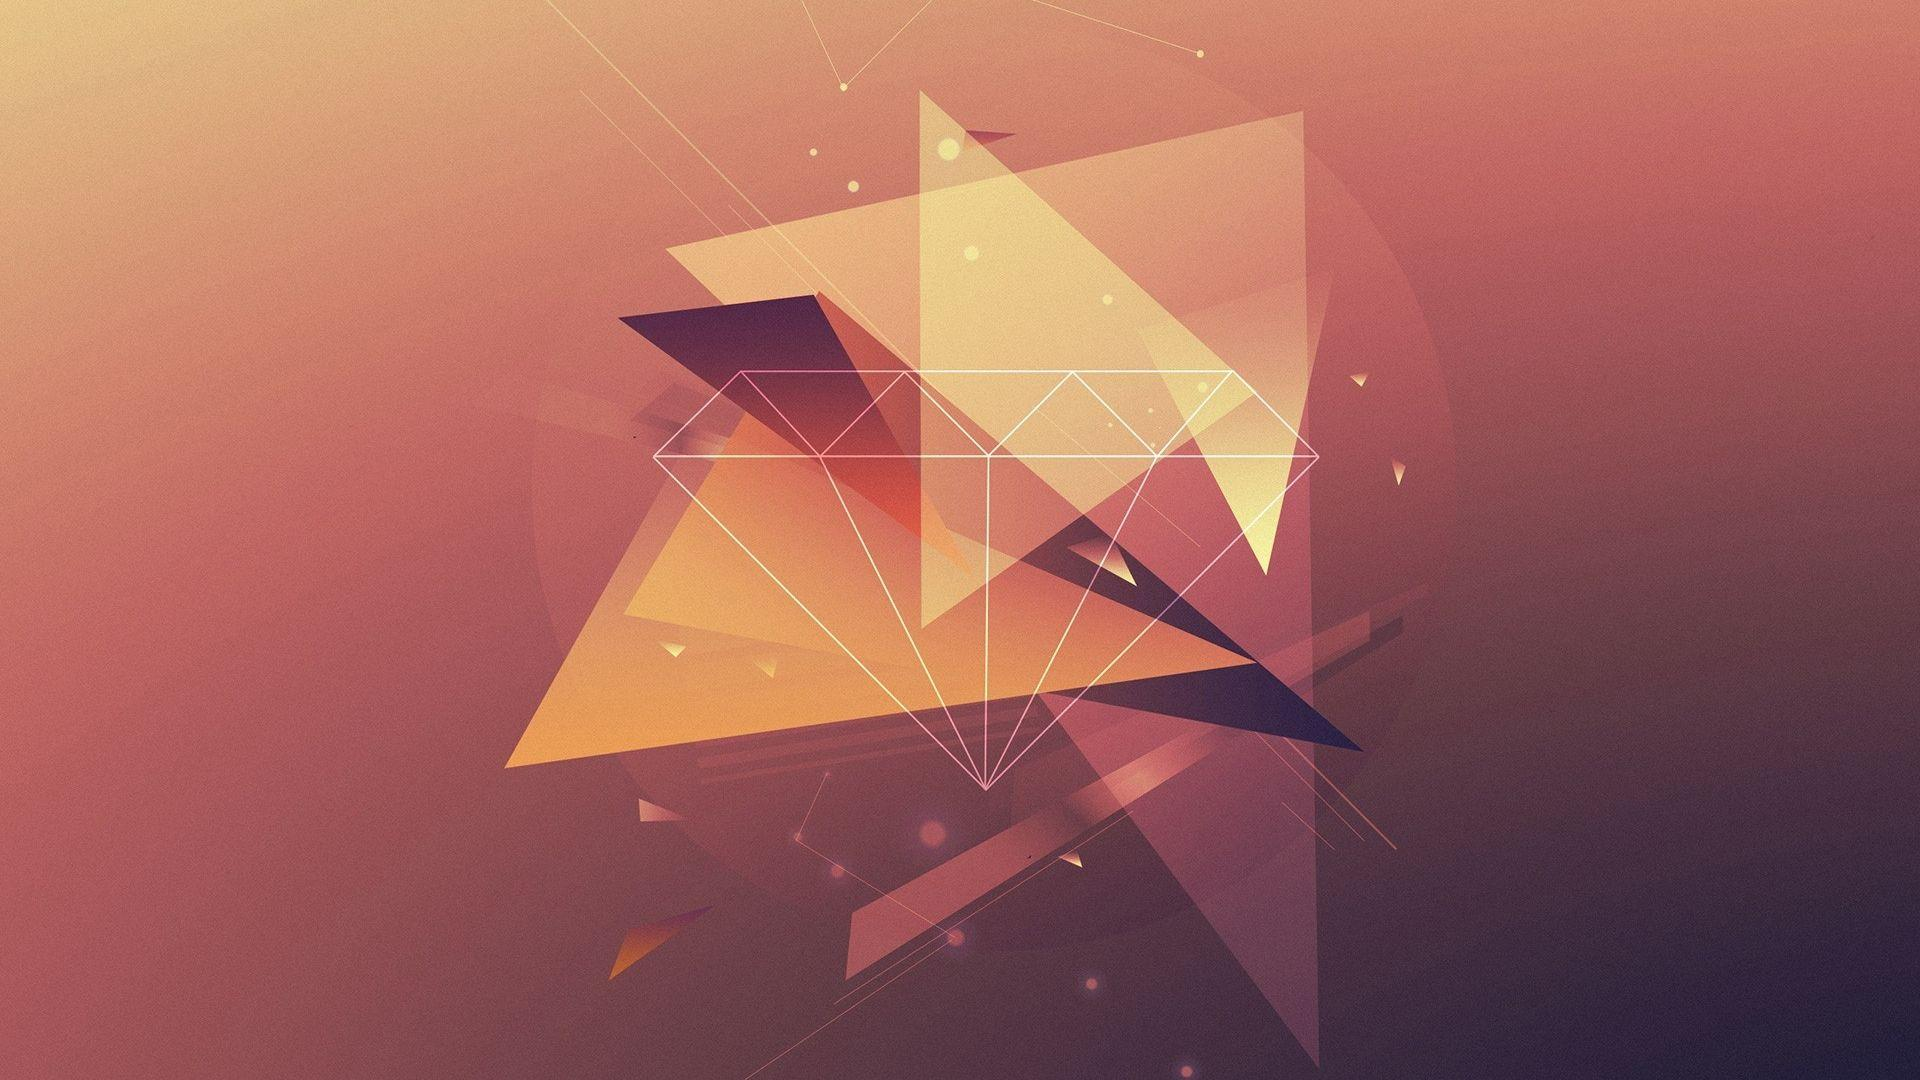 MNY-23: Pictures of Geometric HD, 49 Top Wallpapers